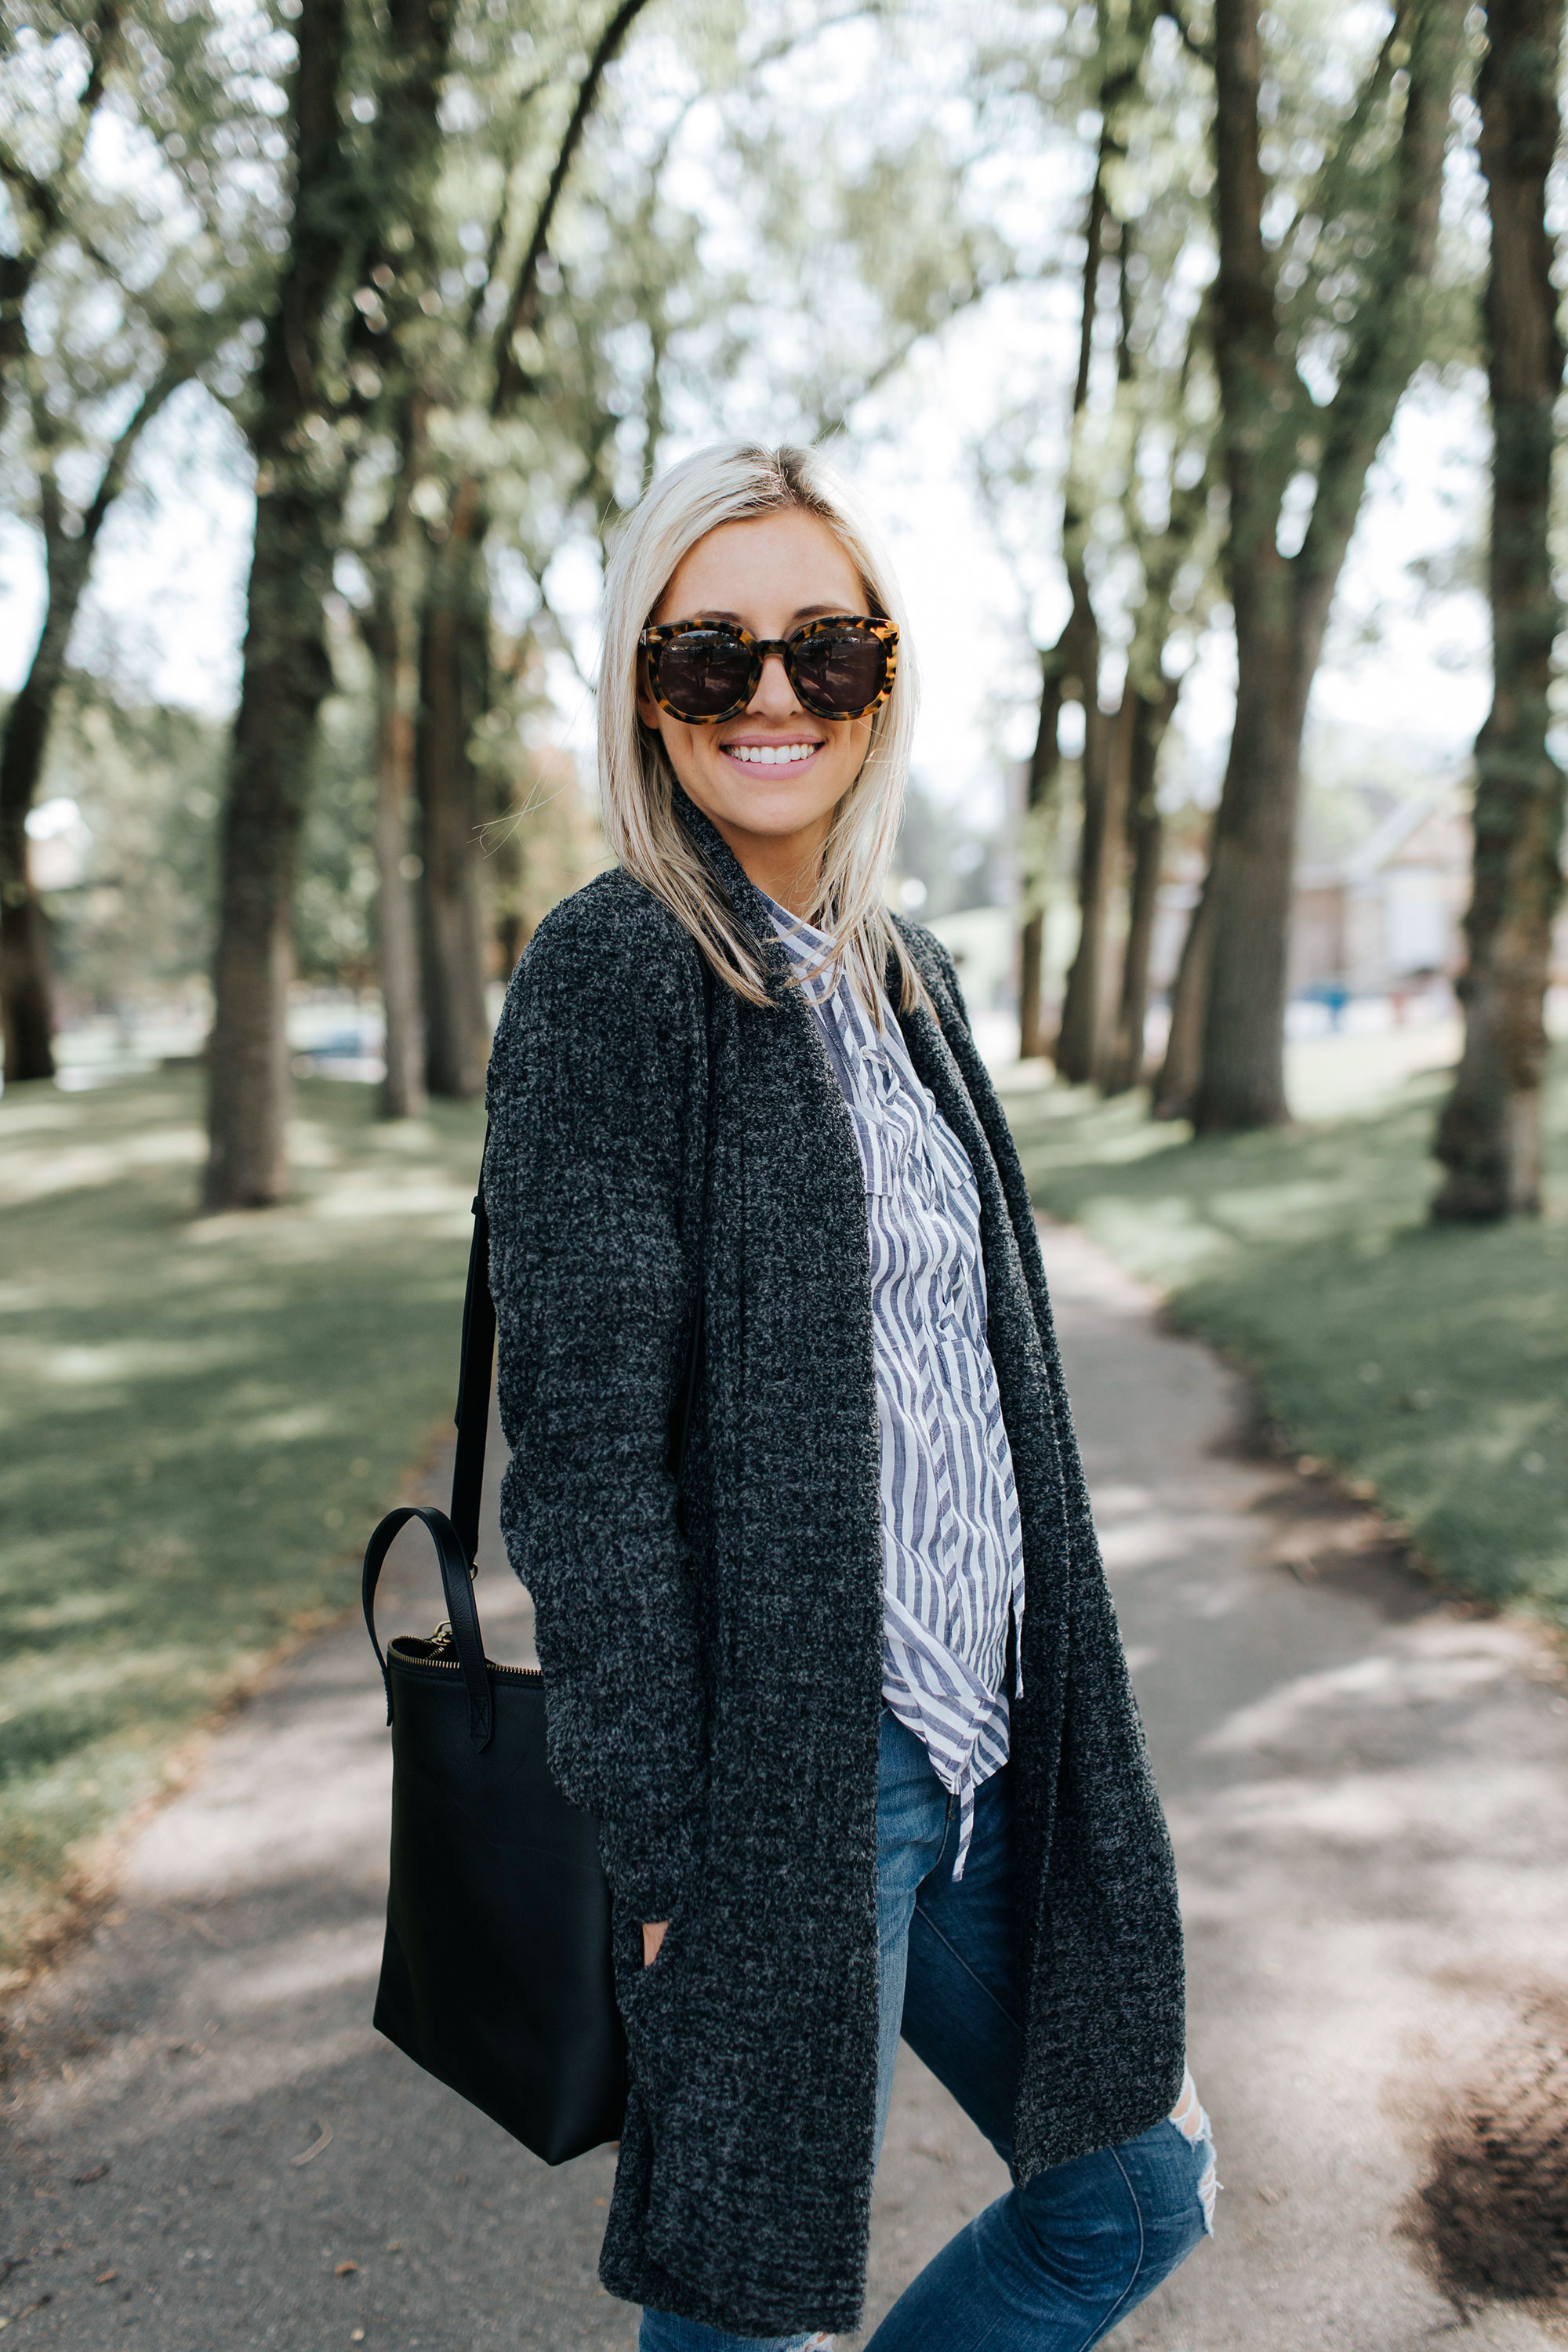 2 Tips for Effortless Personal Style + A Don't-Miss QVC Sale! | @barefootdreams @QVC | Little Miss Fearless